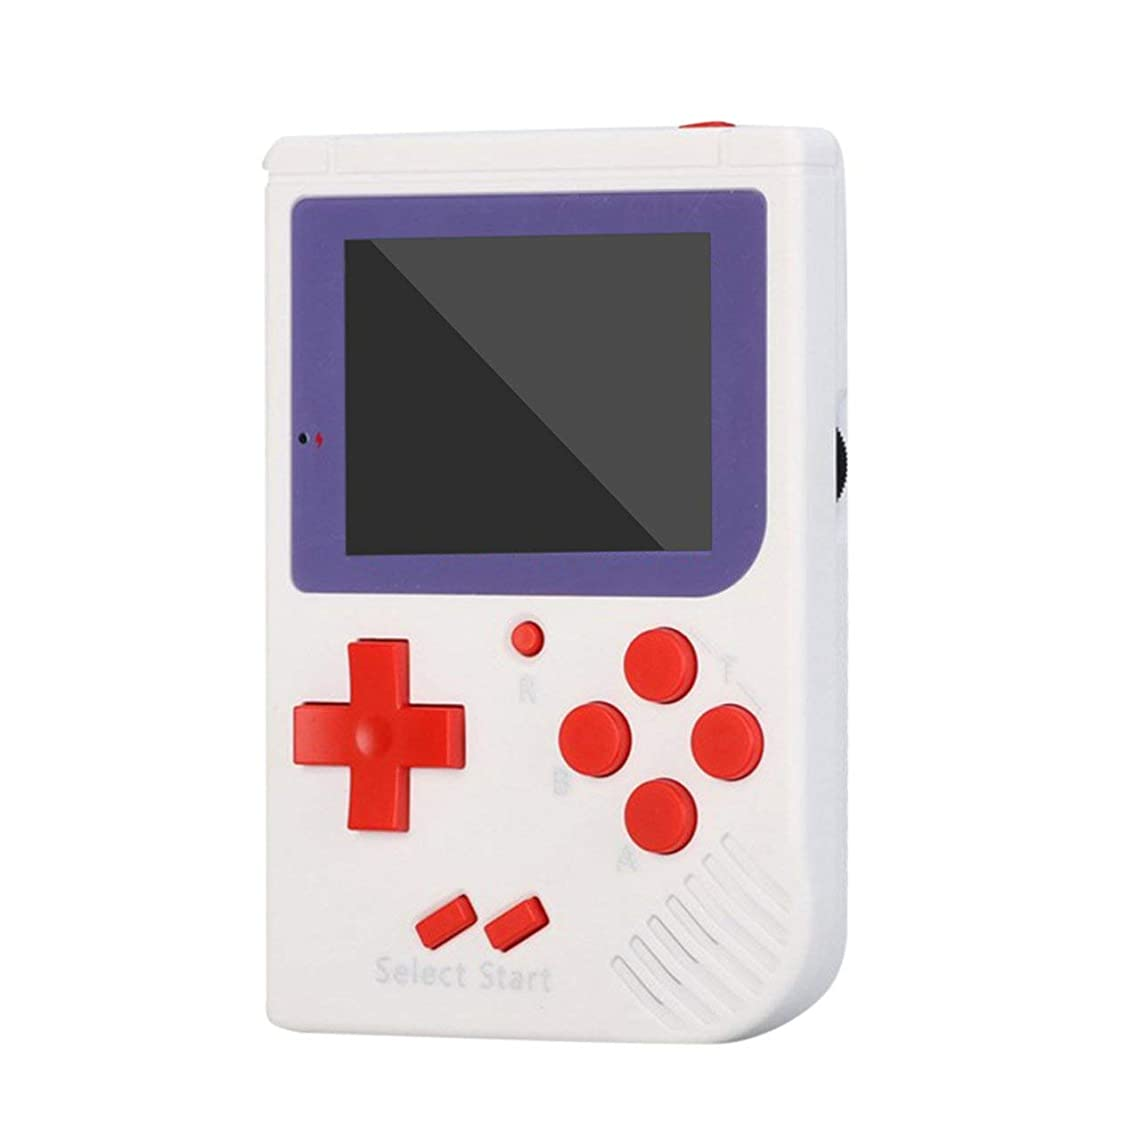 Dalkeyie Handheld Game Console Video Game 8 Bit Retro Mini Pocket Built-in 129 Classic Games for Child Nostalgic Player